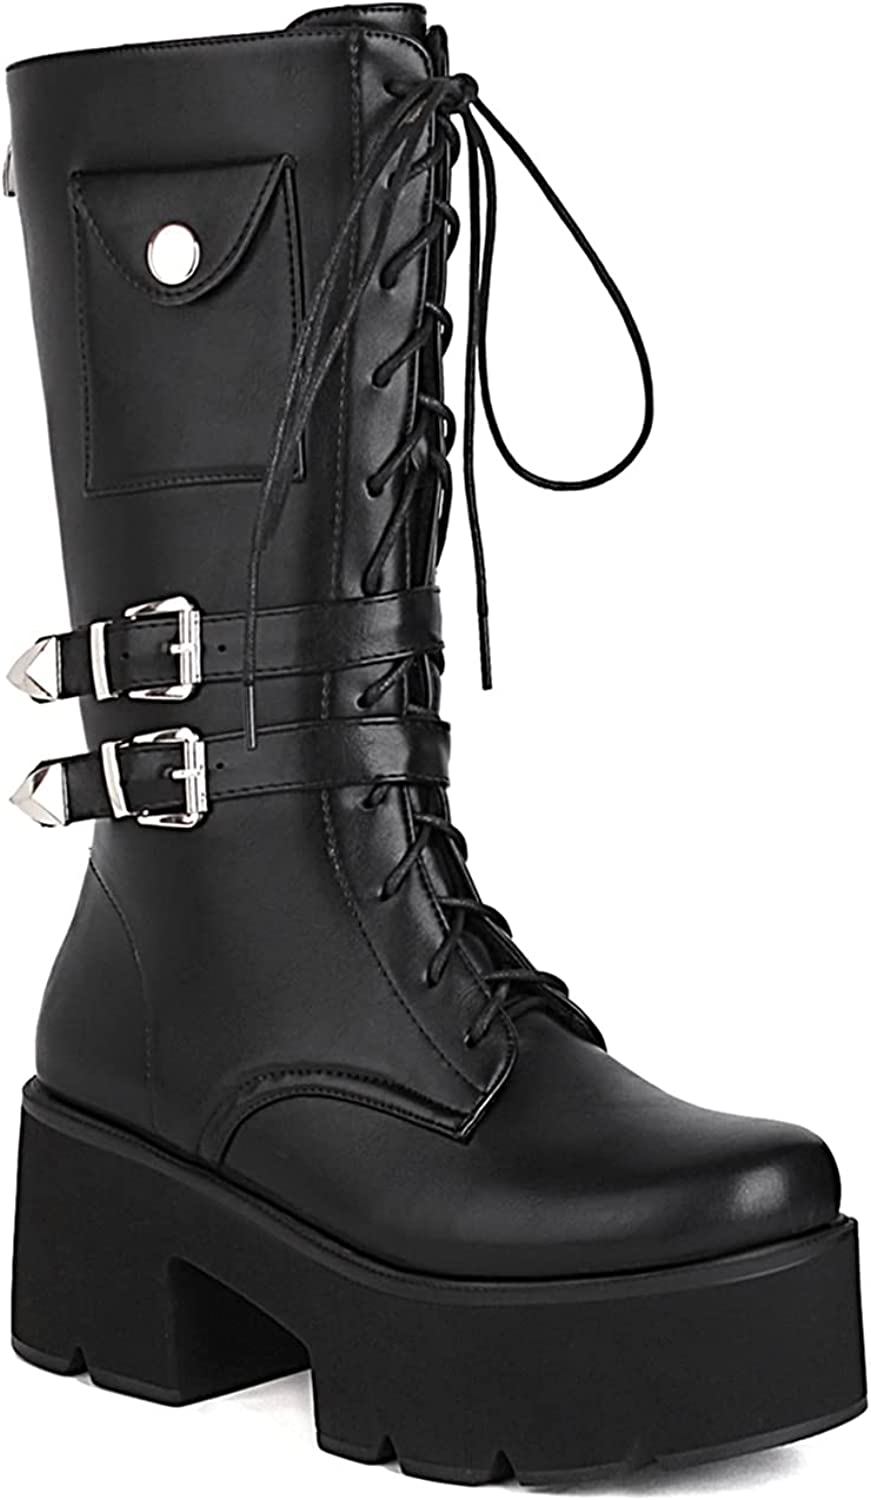 WETKISS Women's Mid Calf Goth Boots Thick Platform Chunky High Heel Booties Lug Sole Square Toe Combat Boots Bat Buckle Lace up Back Zipper Shoes